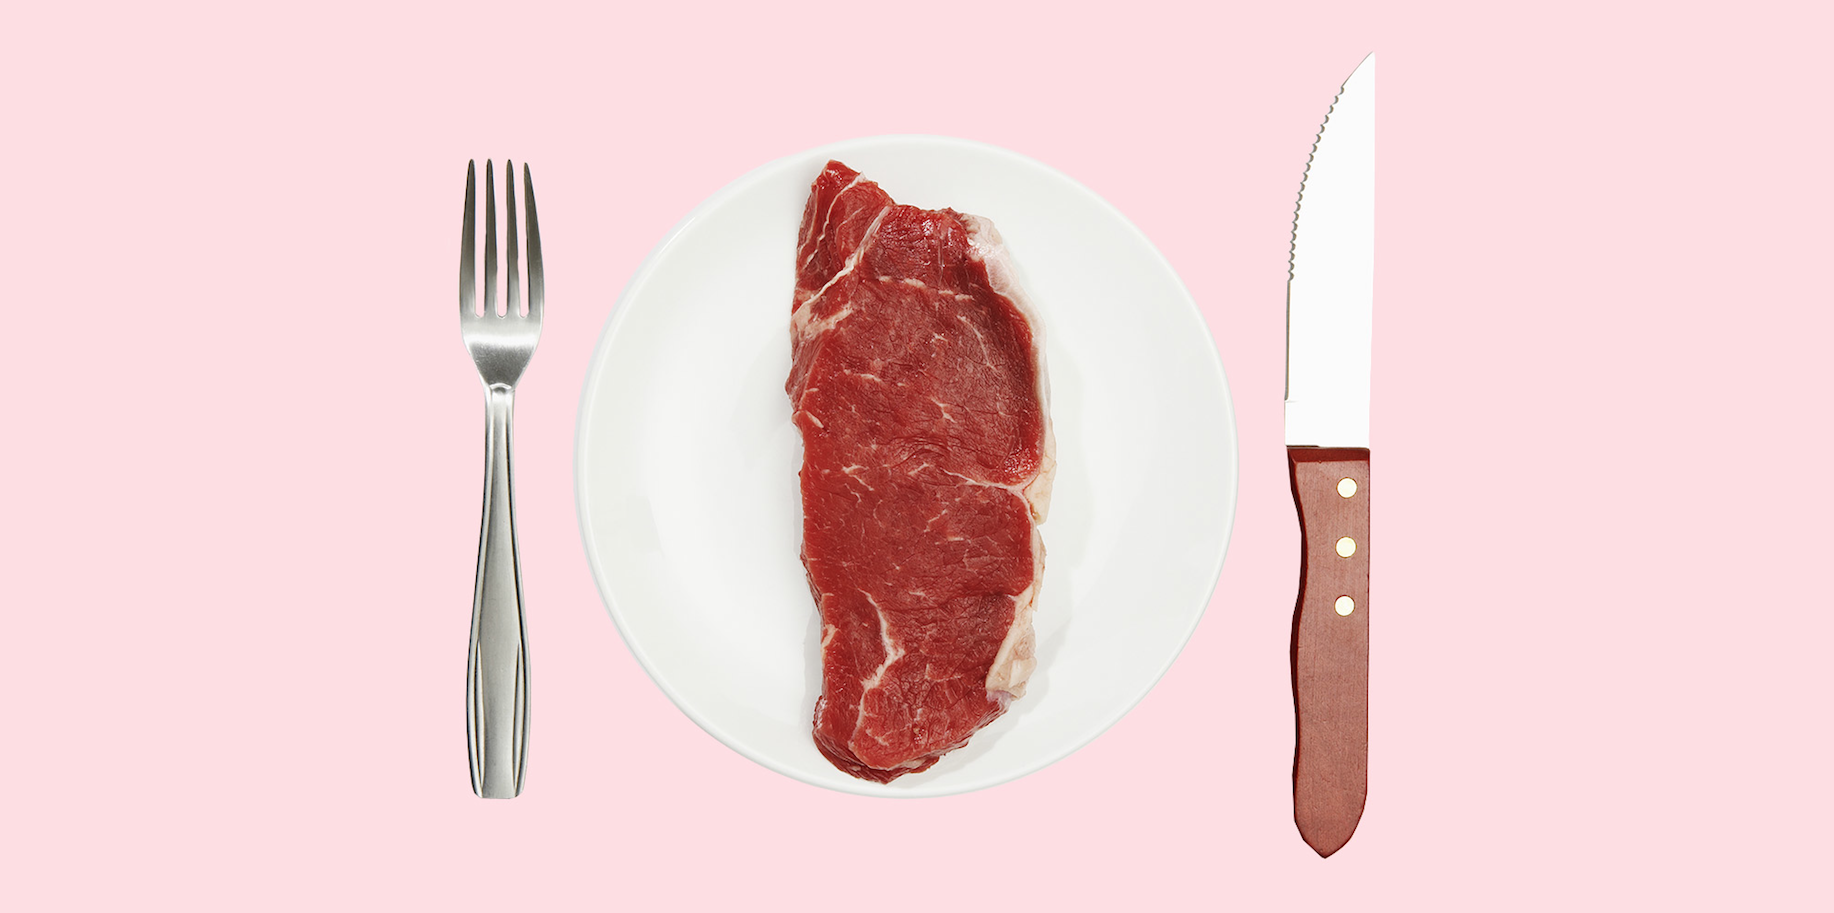 9 Things No One Is Telling You About Going Paleo